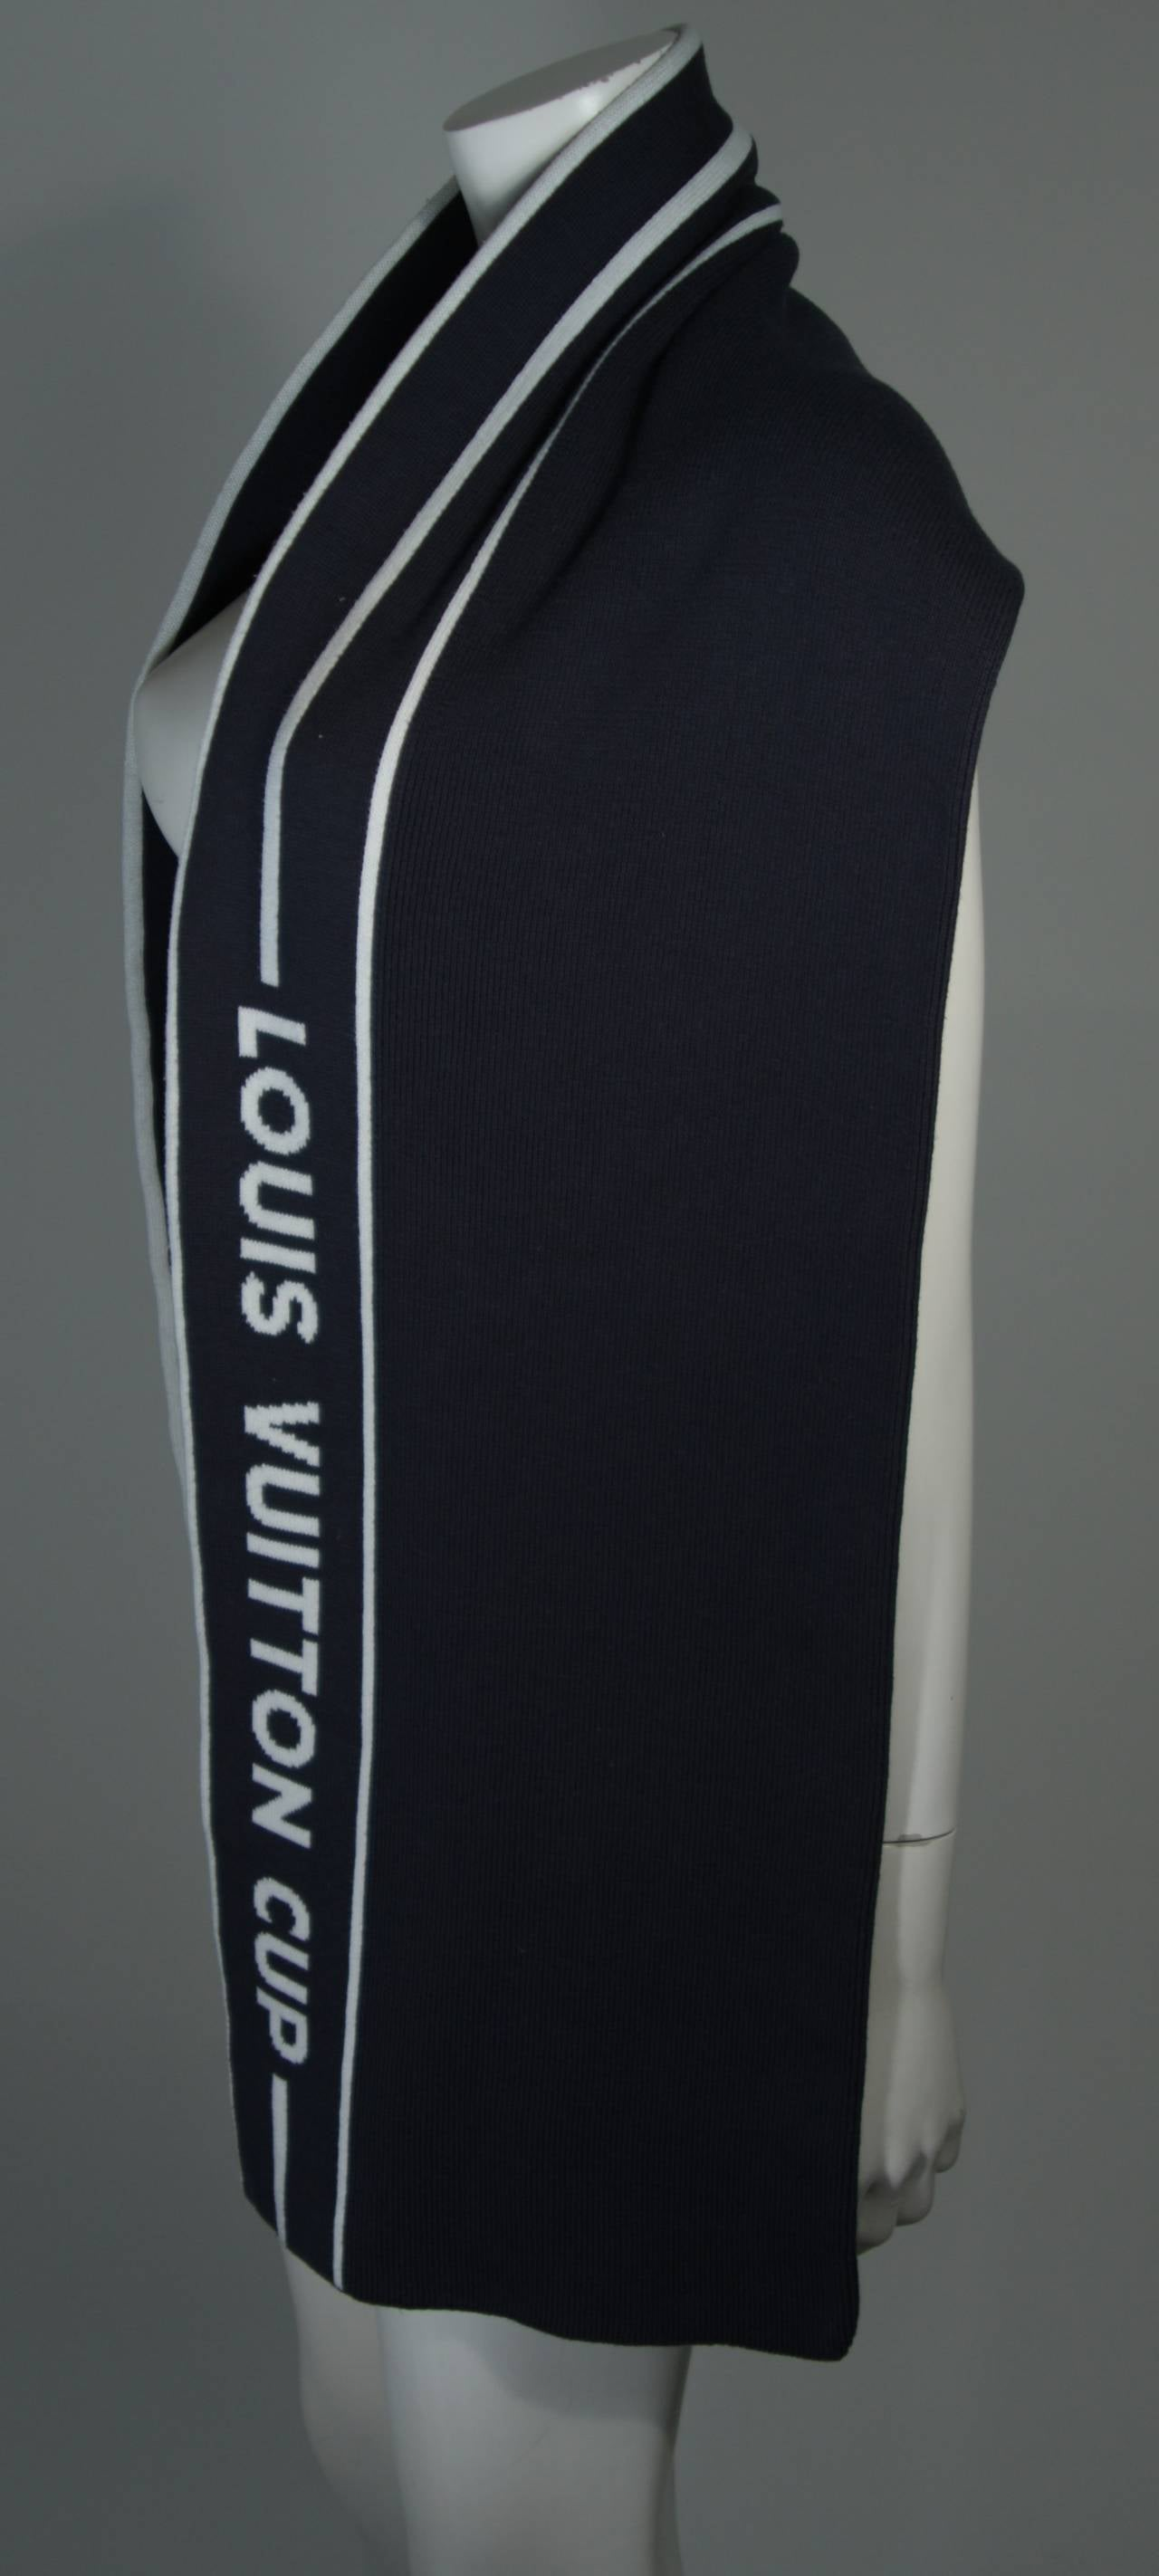 Louis Vuitton Cup Navy Cashmere Blend Scarf In Excellent Condition For Sale In Los Angeles, CA